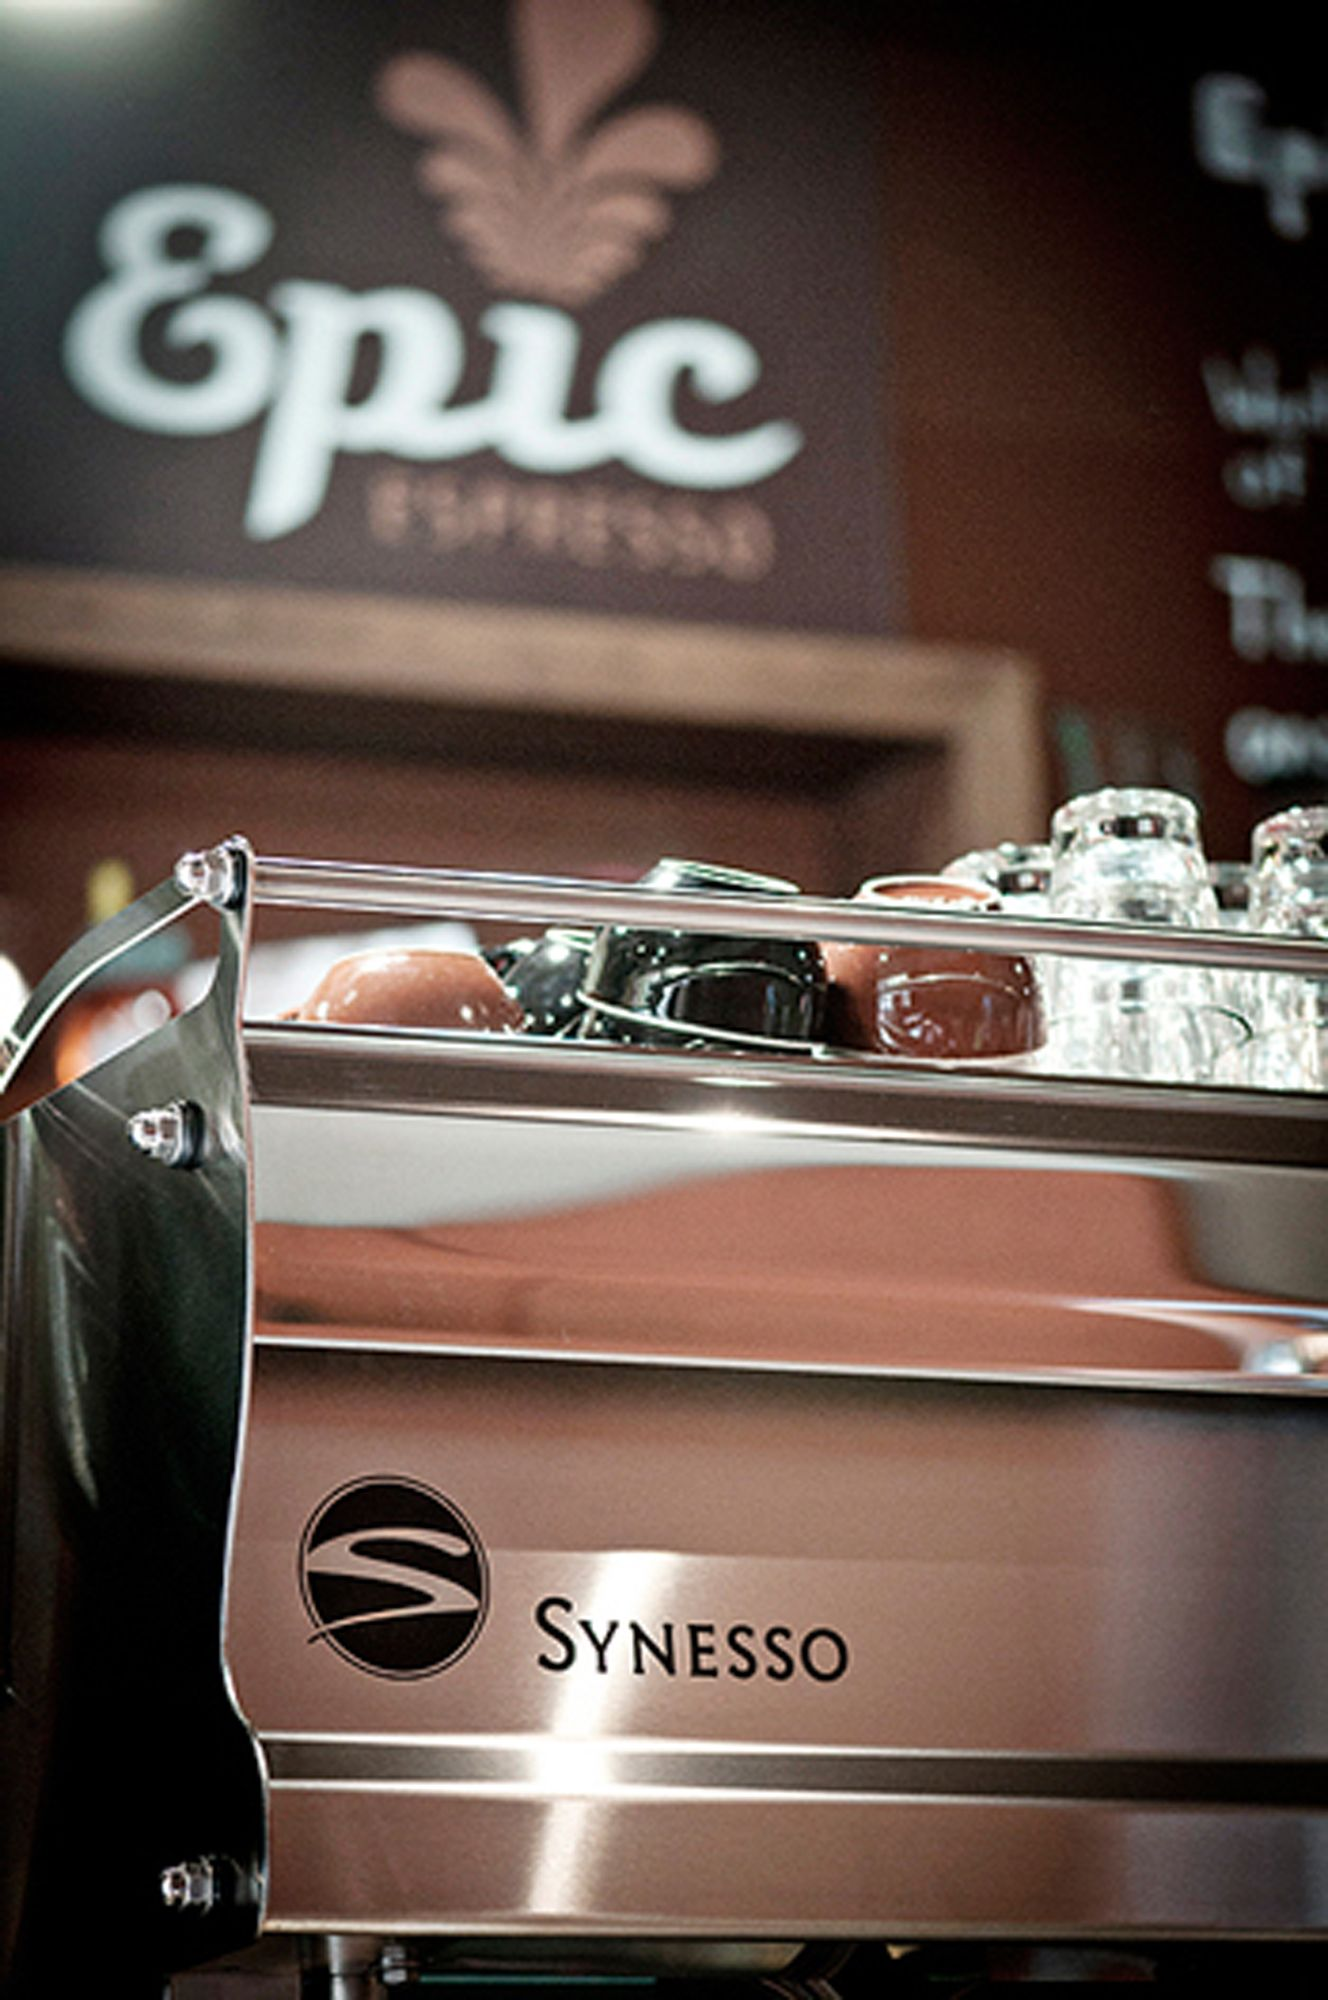 Epic Espresso, West Perth